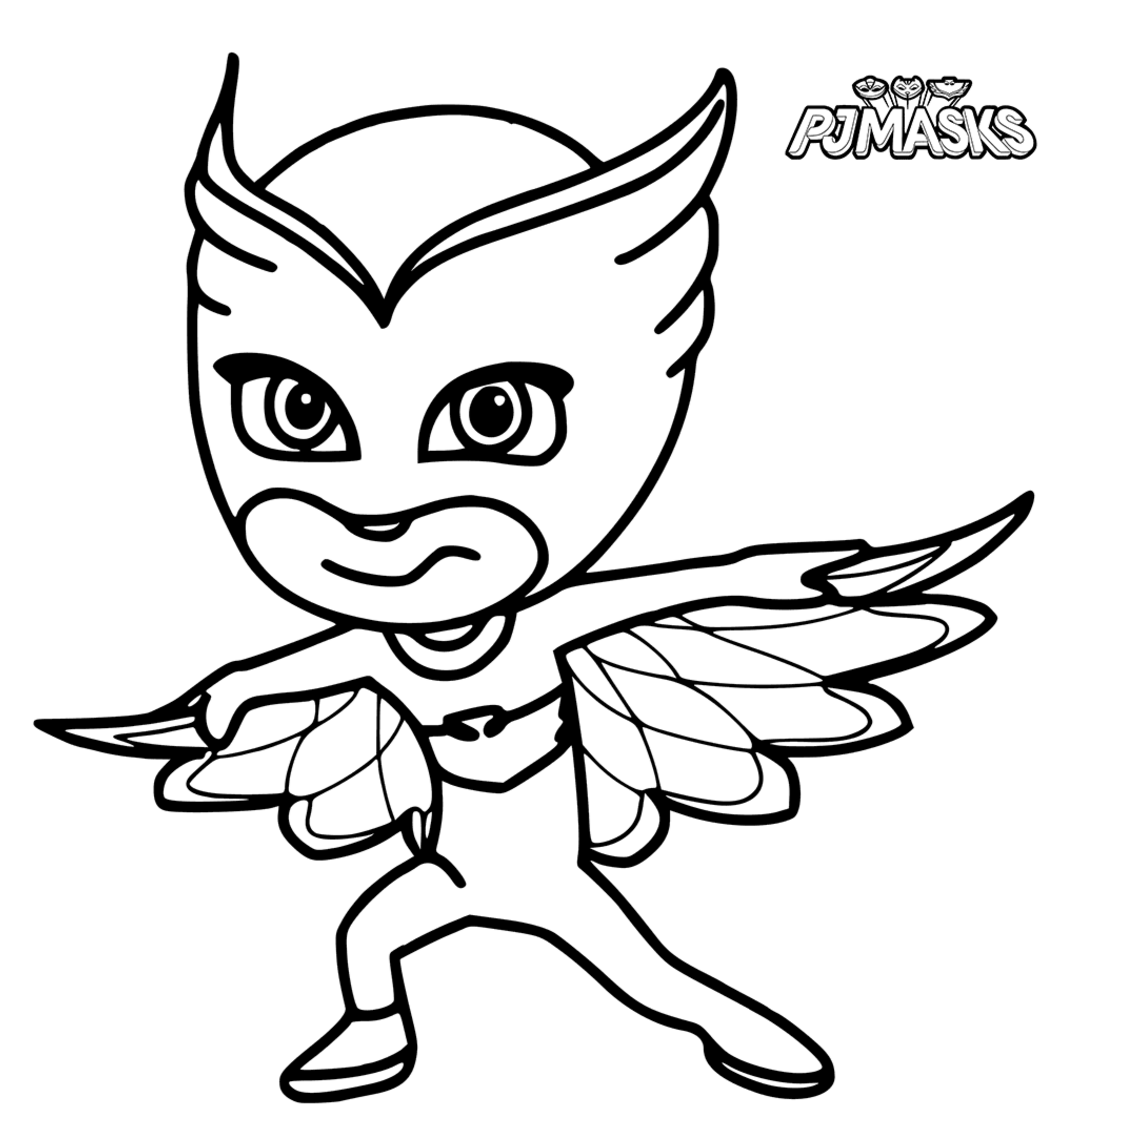 photo about Pj Masks Printable Coloring Pages known as PJ Masks Coloring Internet pages - Easiest Coloring Web pages For Little ones